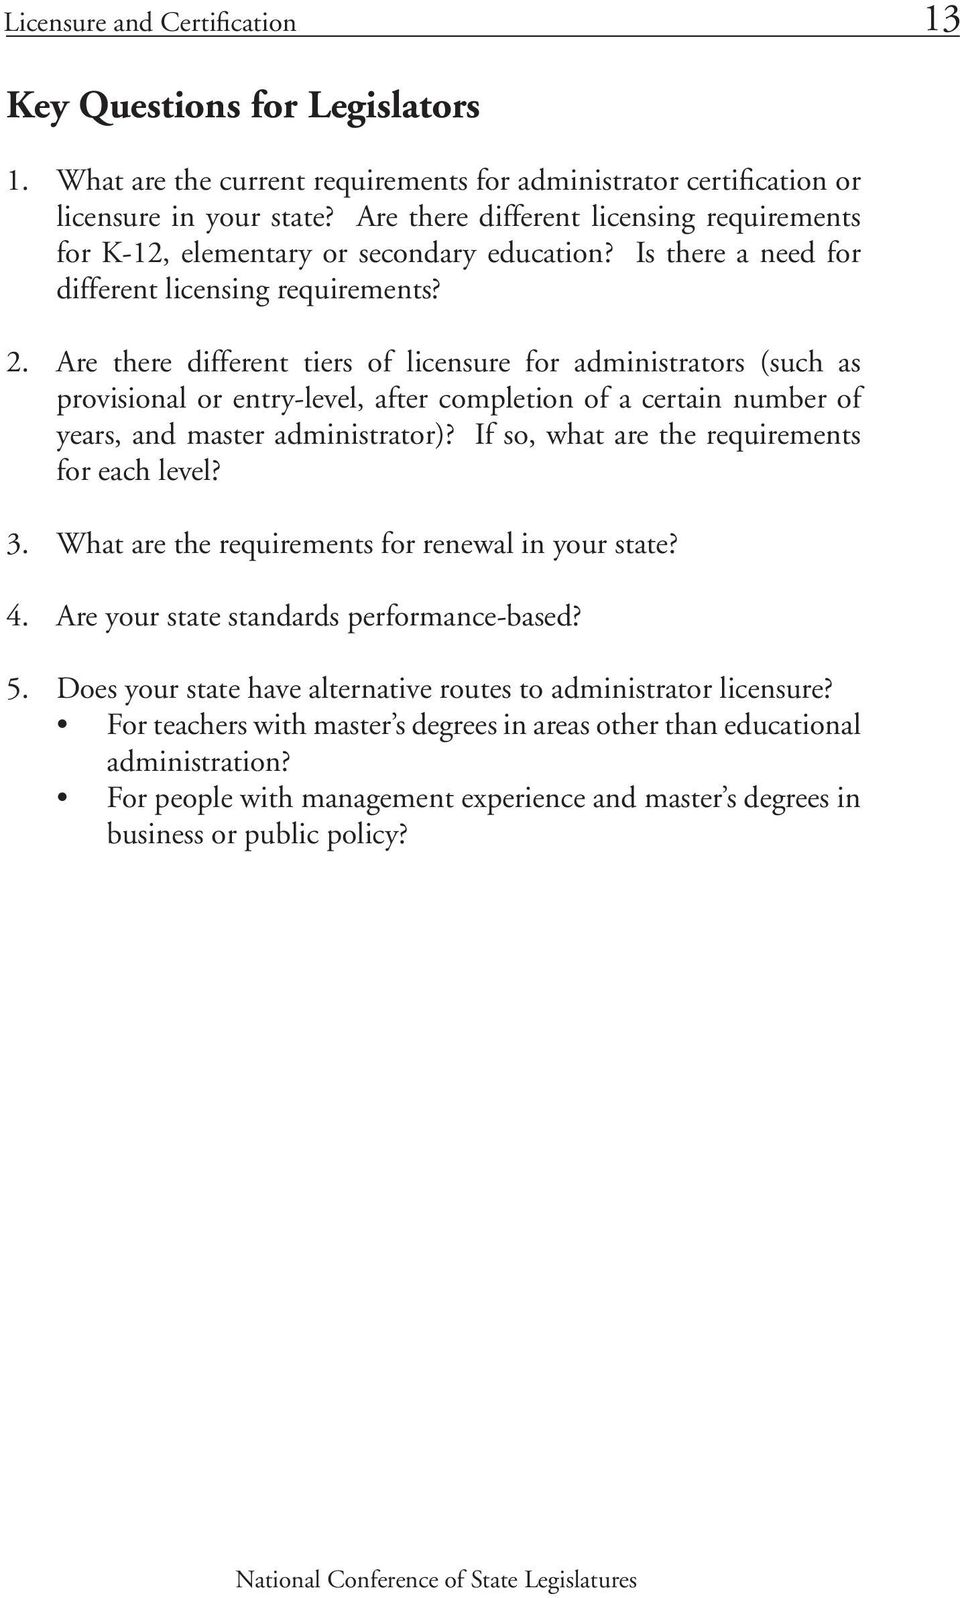 Are there different tiers of licensure for administrators (such as provisional or entry-level, after completion of a certain number of years, and master administrator)?